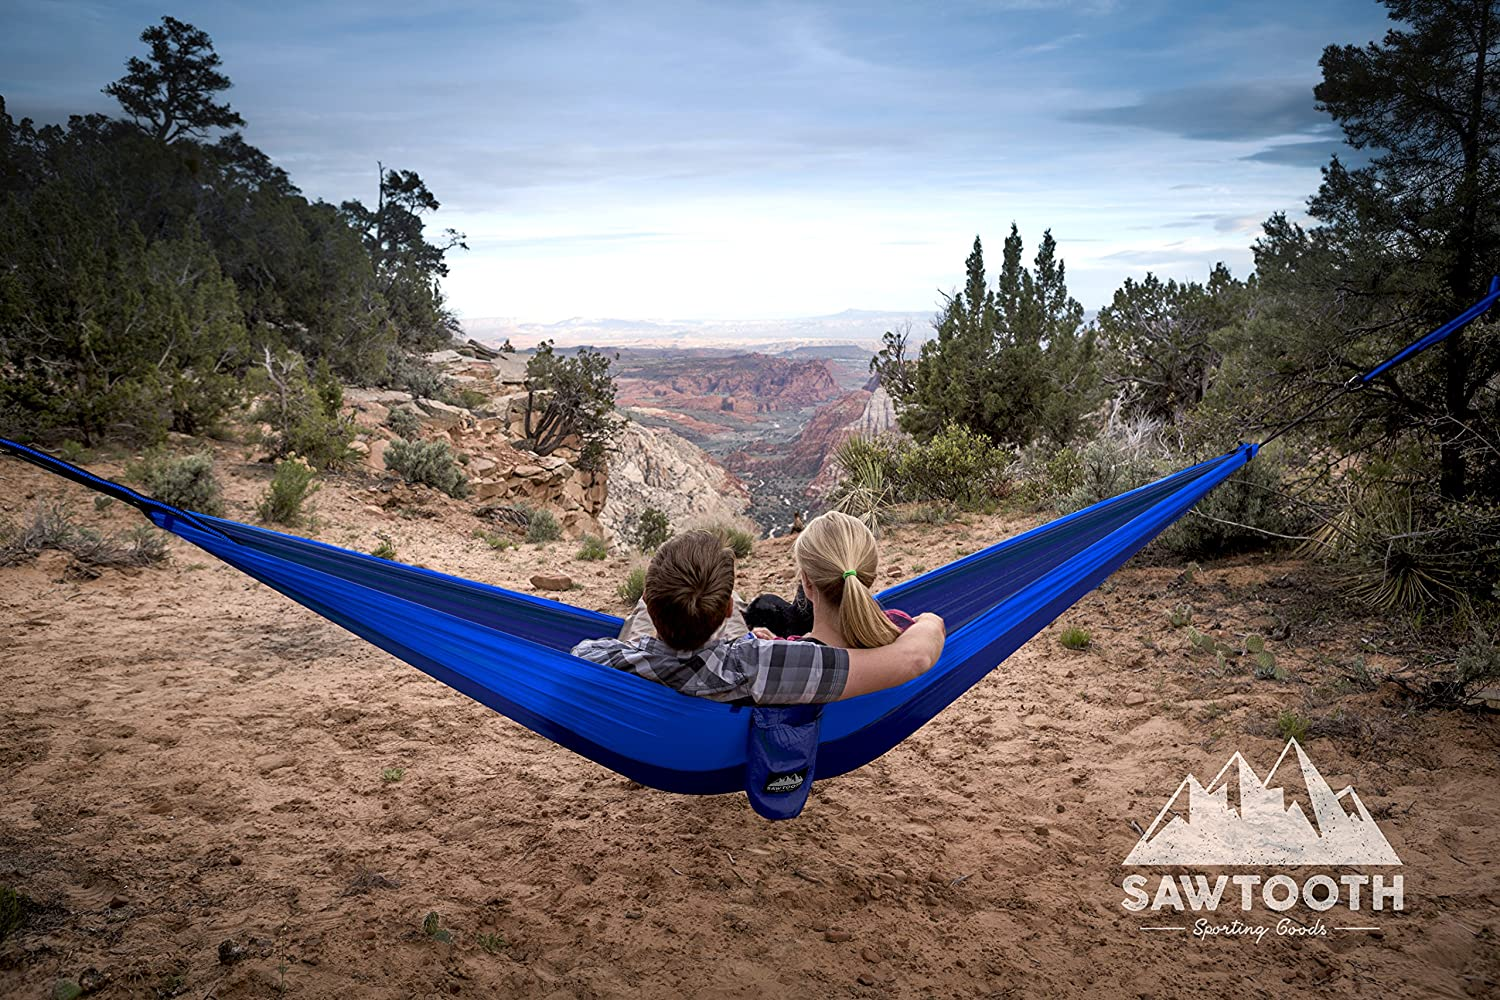 Amazon.com: Sawtooth Double Camping Hammock With Tree Straps and Aluminum  Carabiners - COMPLETE KIT - Lightweight Portable Parachute Nylon for  Backpacking ... - Amazon.com: Sawtooth Double Camping Hammock With Tree Straps And